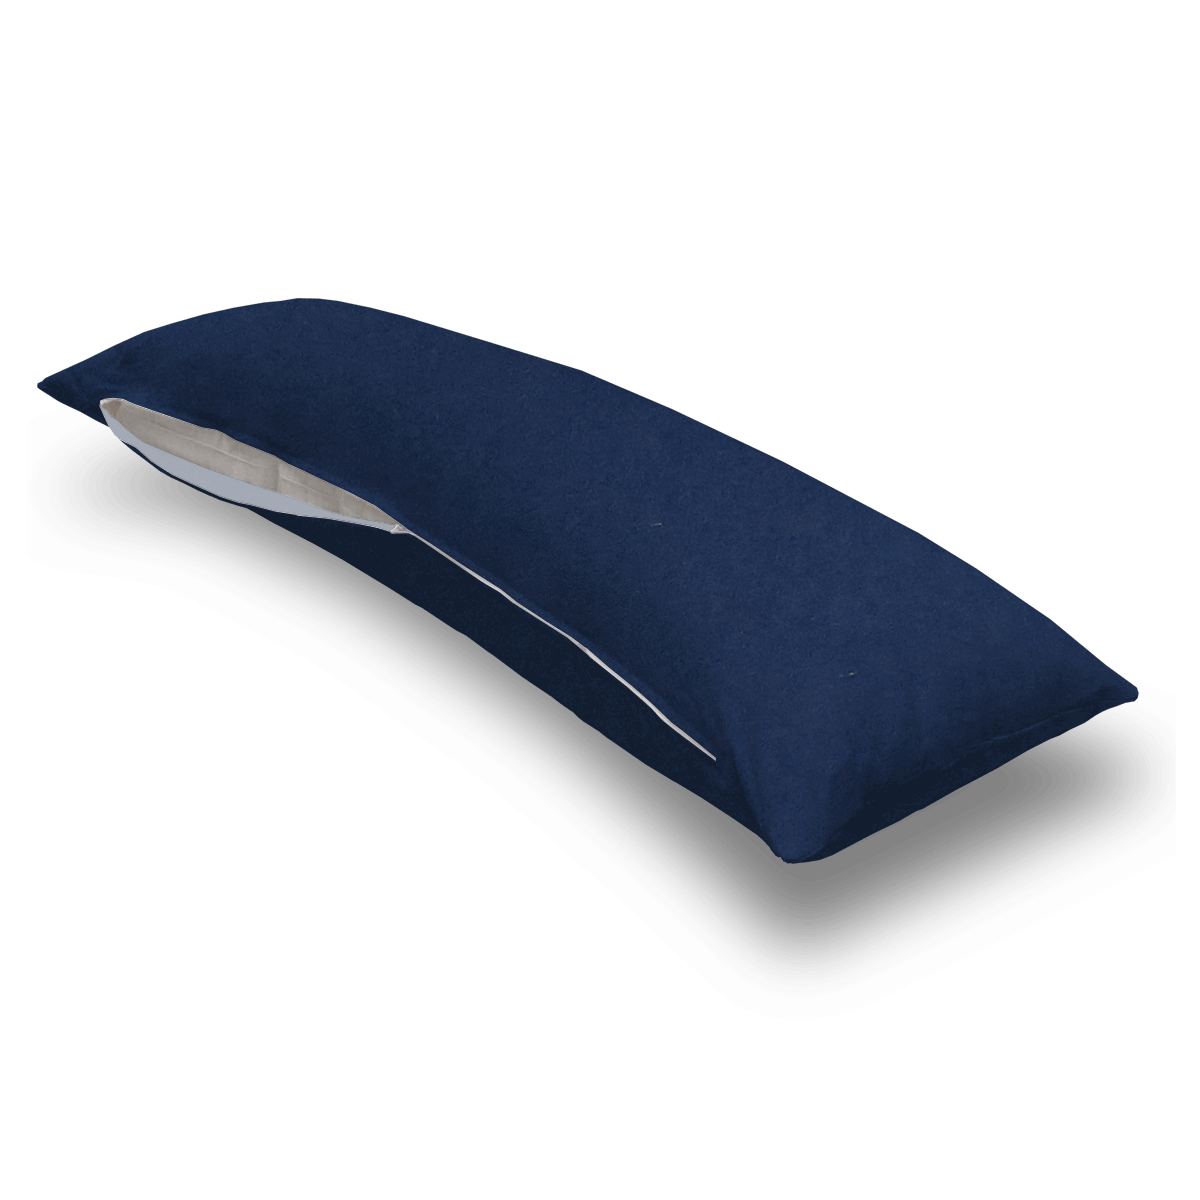 Solid Navy Jersey Knit Body Pillow Case